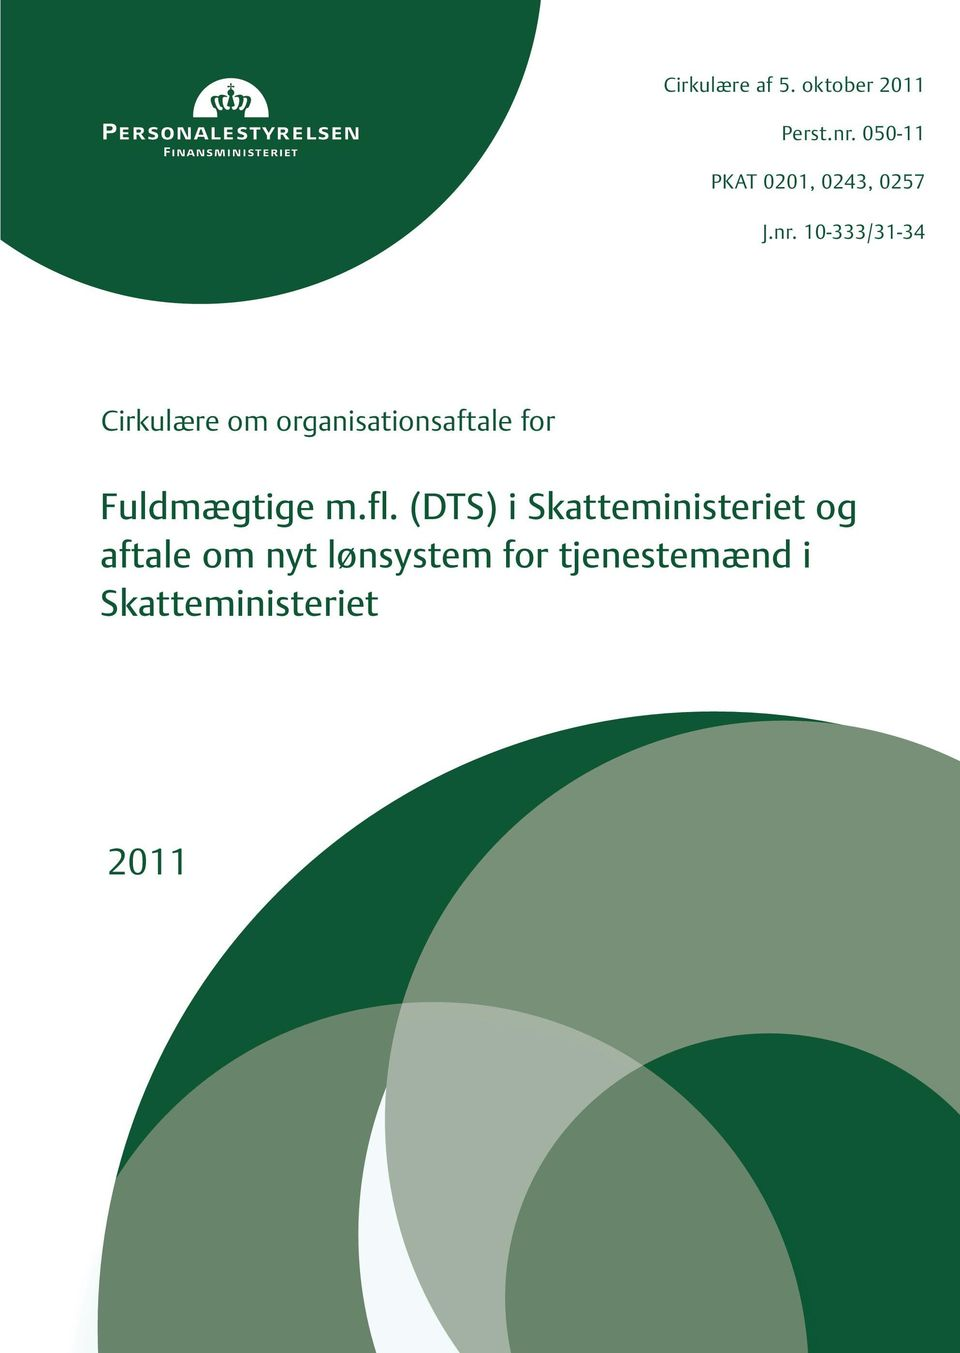 10-333/31-34 Cirkulære om organisationsaftale for